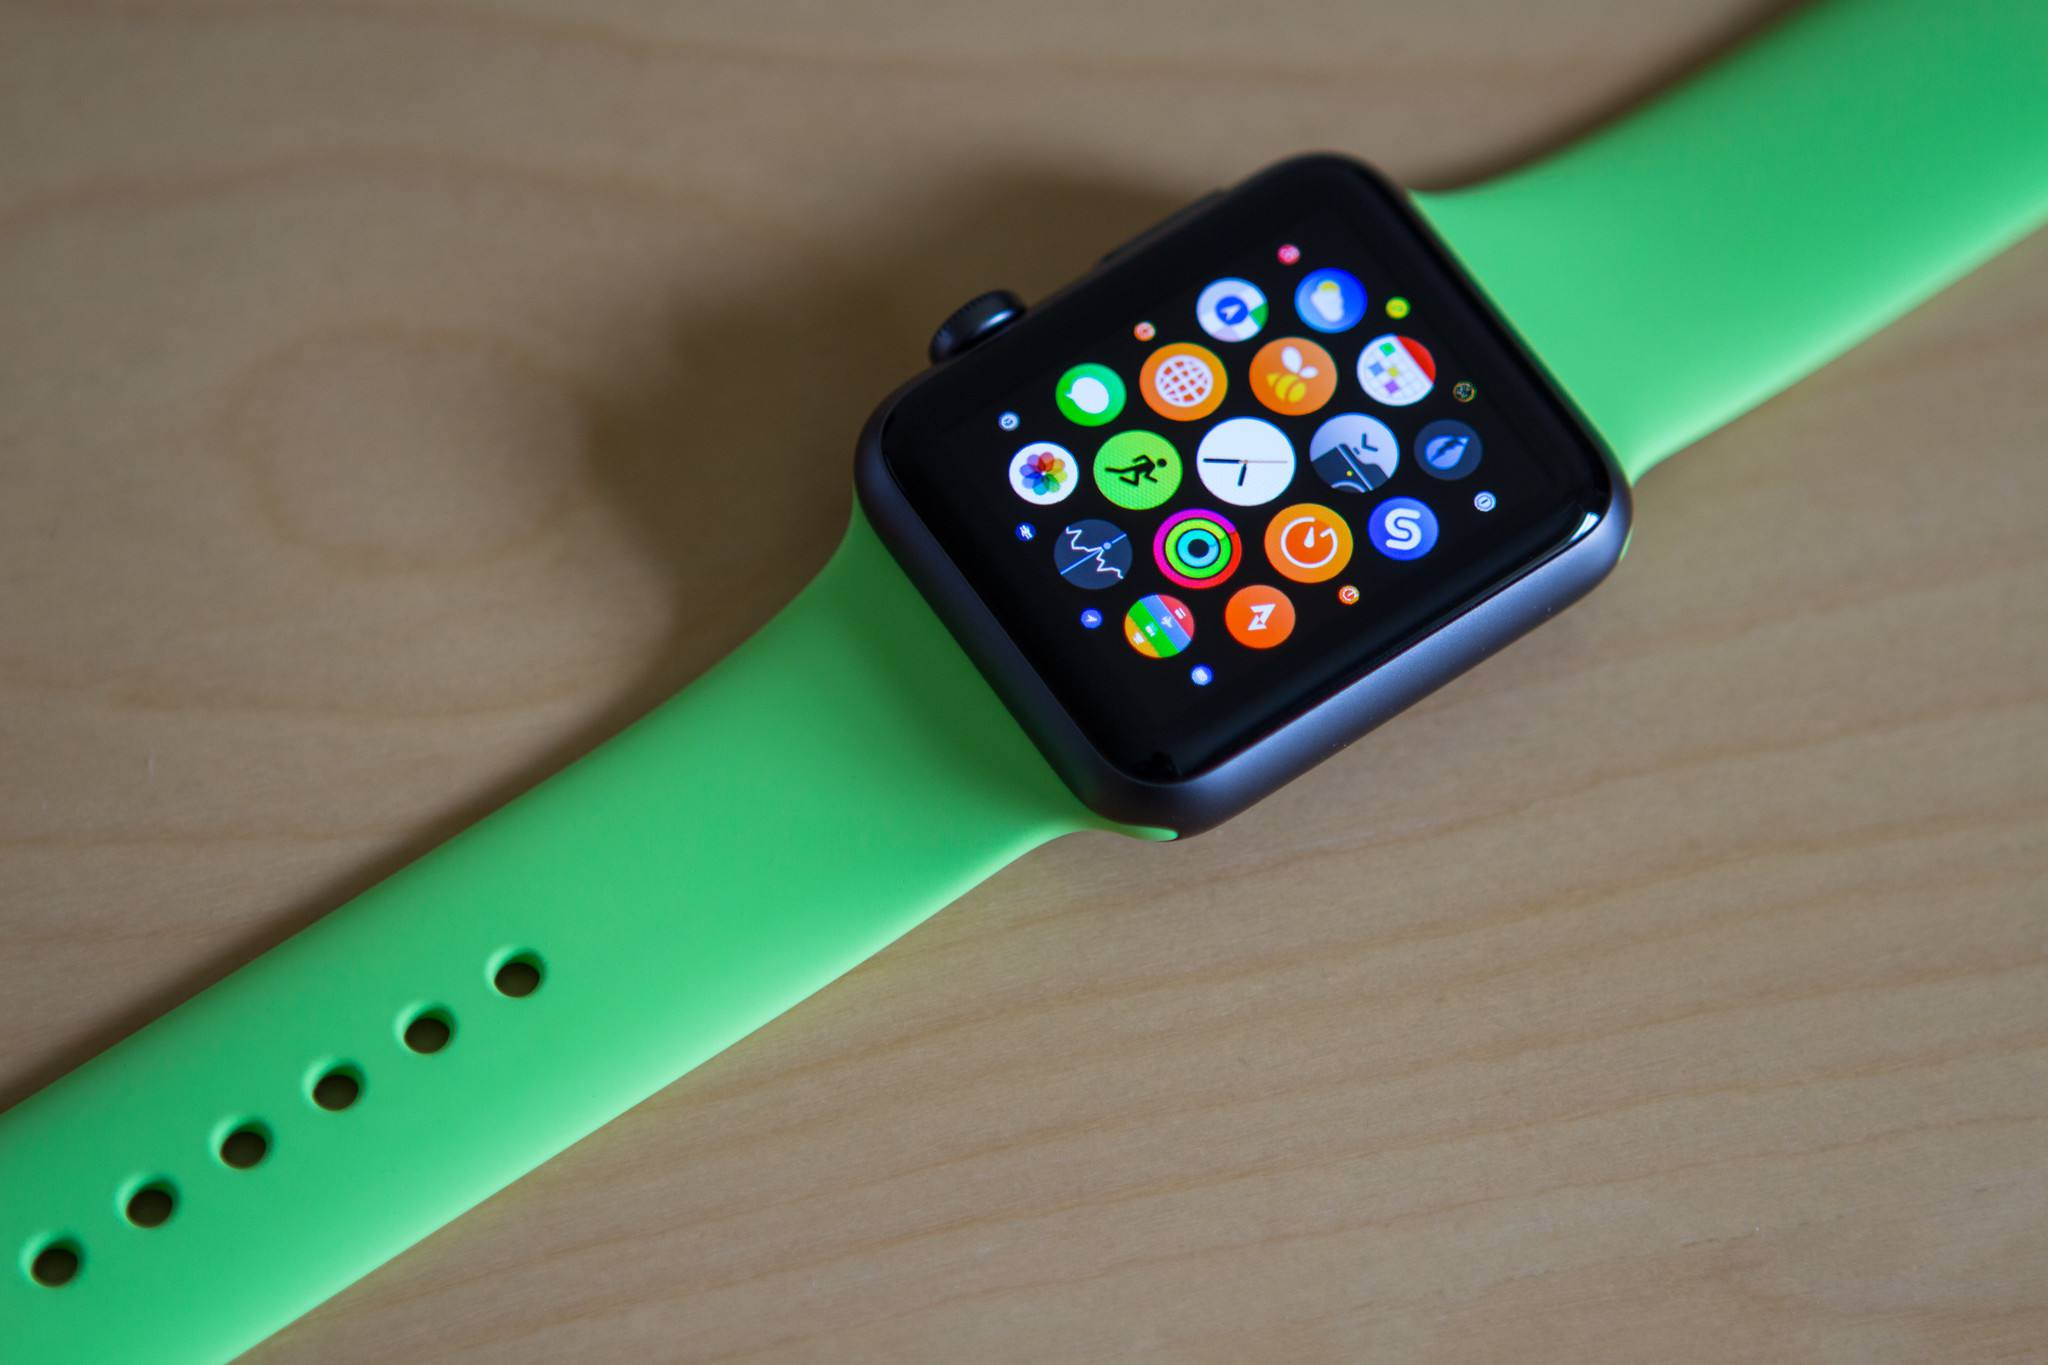 Apple Watch with green Sport band on a table